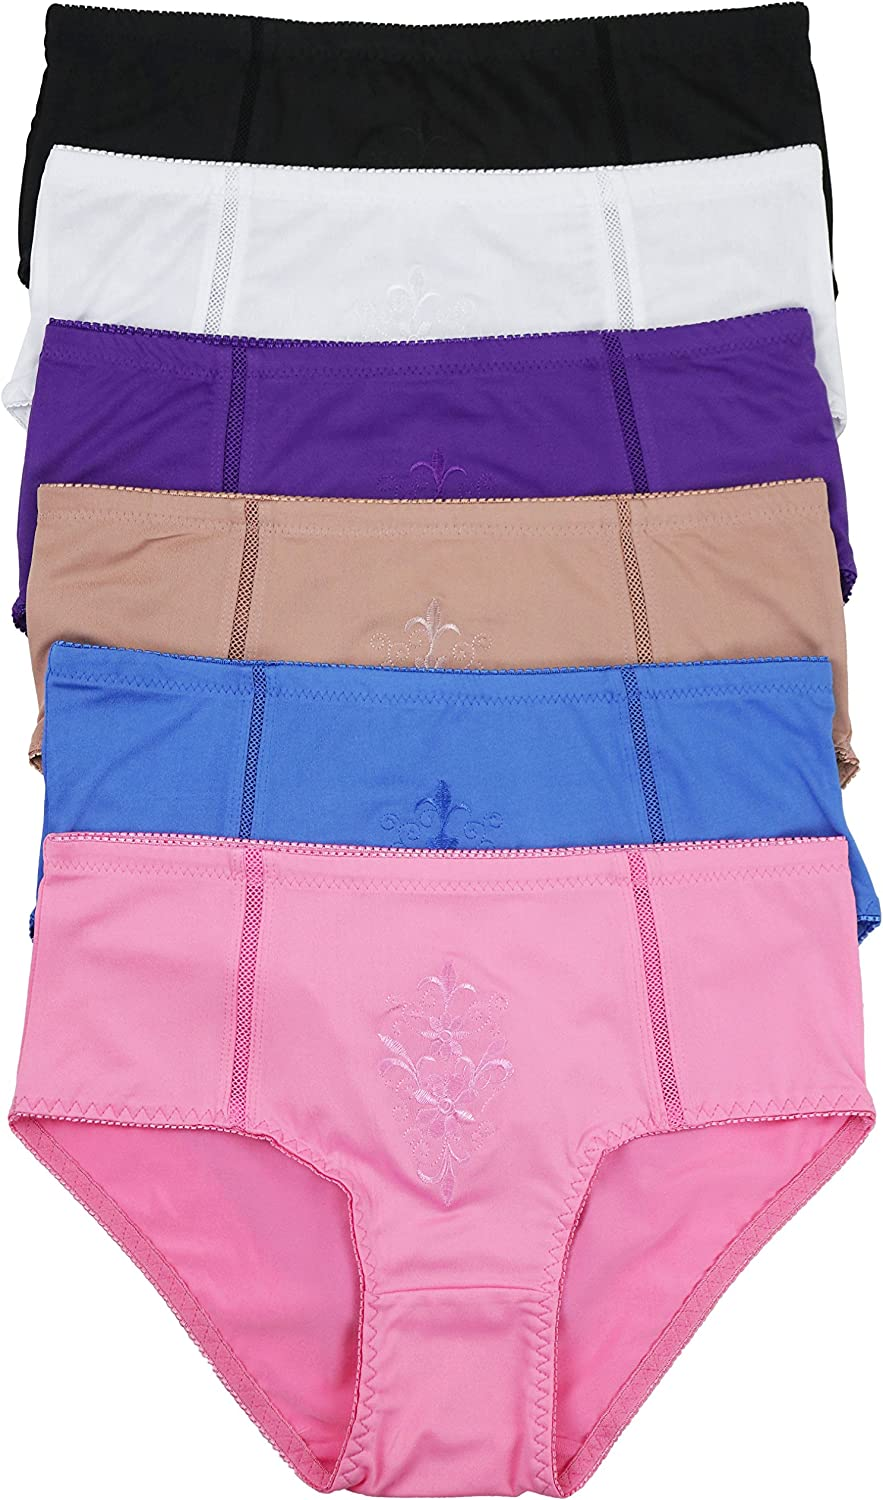 ToBeInStyle Women's Max 80% OFF 6 Pack High-Waisted in Ranking TOP1 Multiple Briefs Style